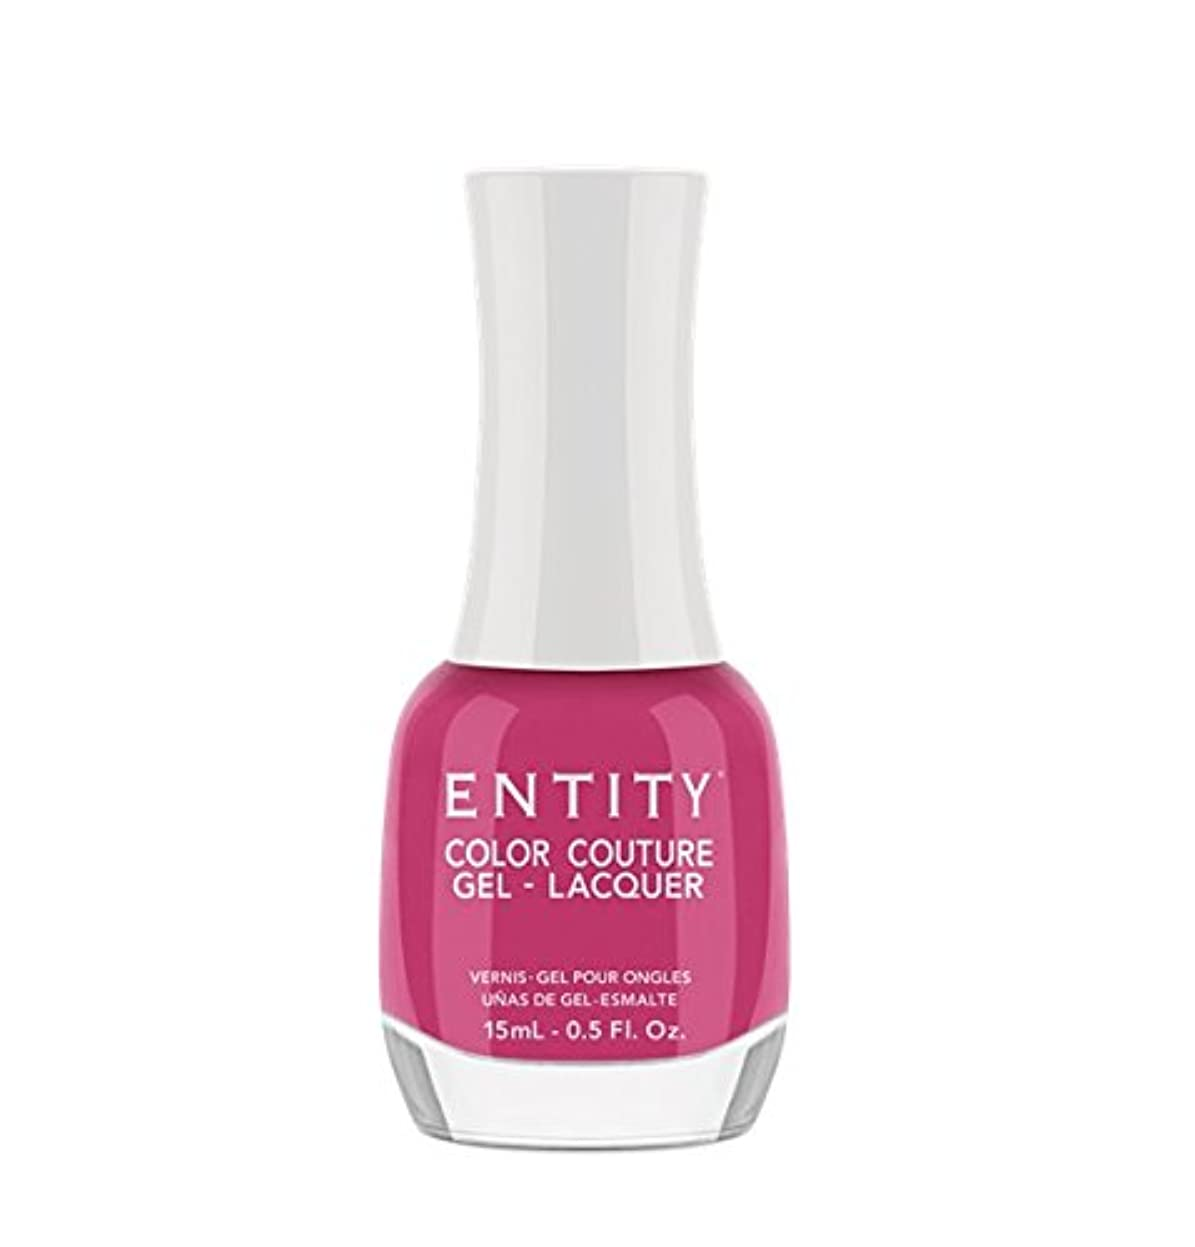 Entity Color Couture Gel-Lacquer - Midriffs & Mini Skirts - 15 ml/0.5 oz